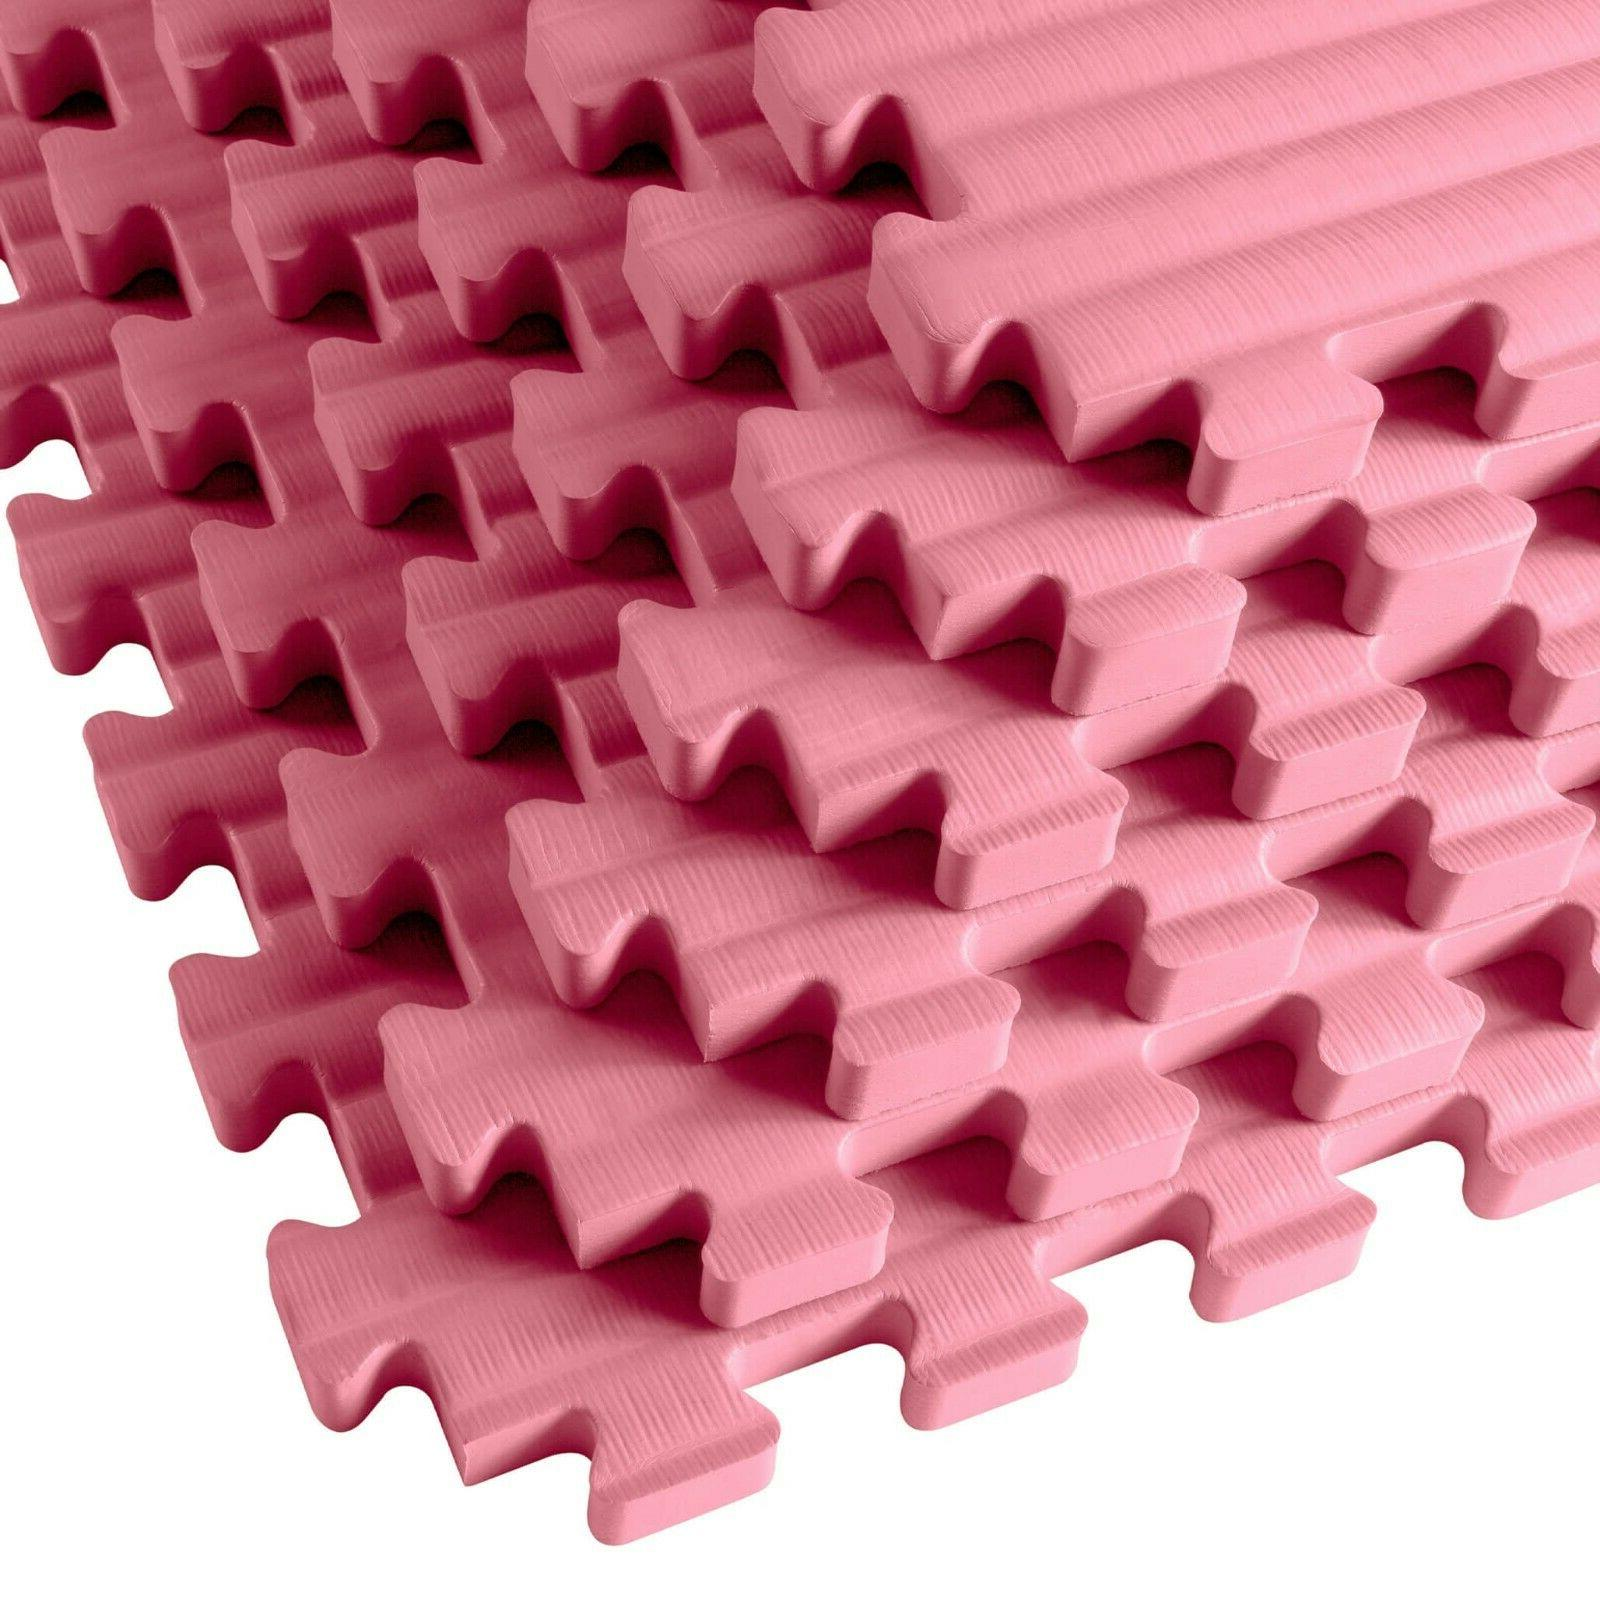 Tatami MMA Mats Gyms Pink pack, sq ft